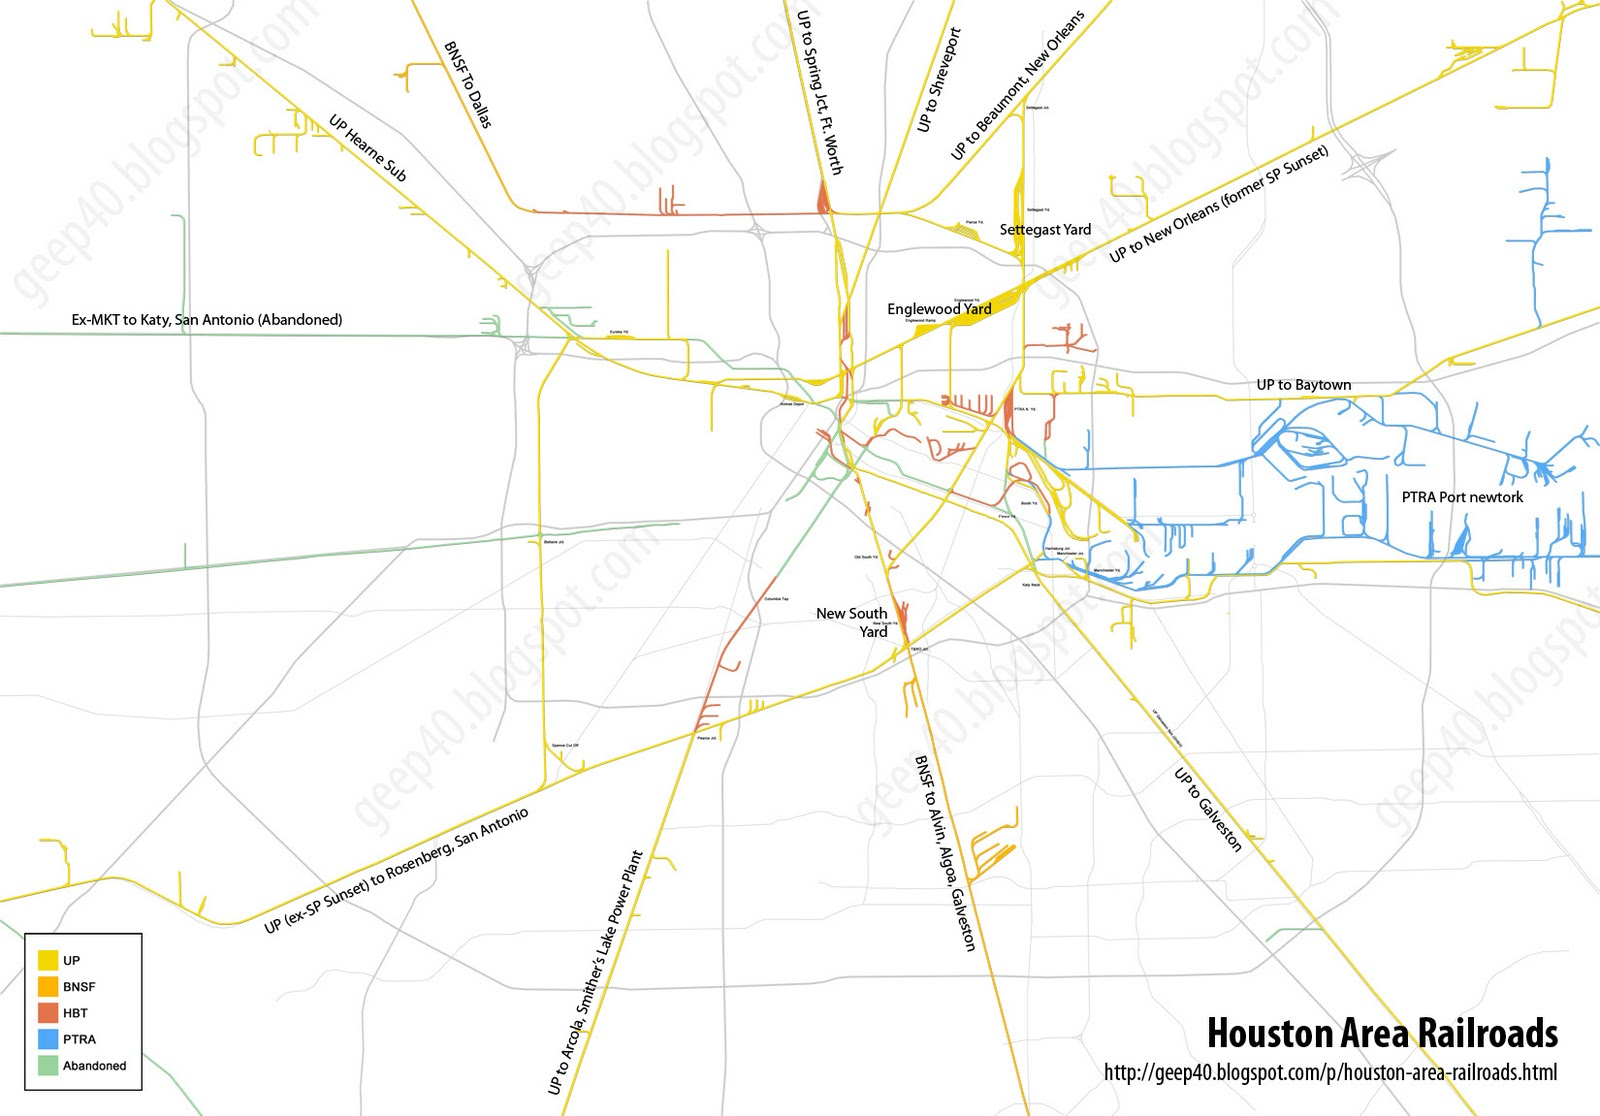 Map Of Houston Counties, Feel Free To Use It If It Comes In Handy It Is Not Labeled So It Assumes A Familiarity With The City Layout And Scale Major Roads Are In Gray, Map Of Houston Counties